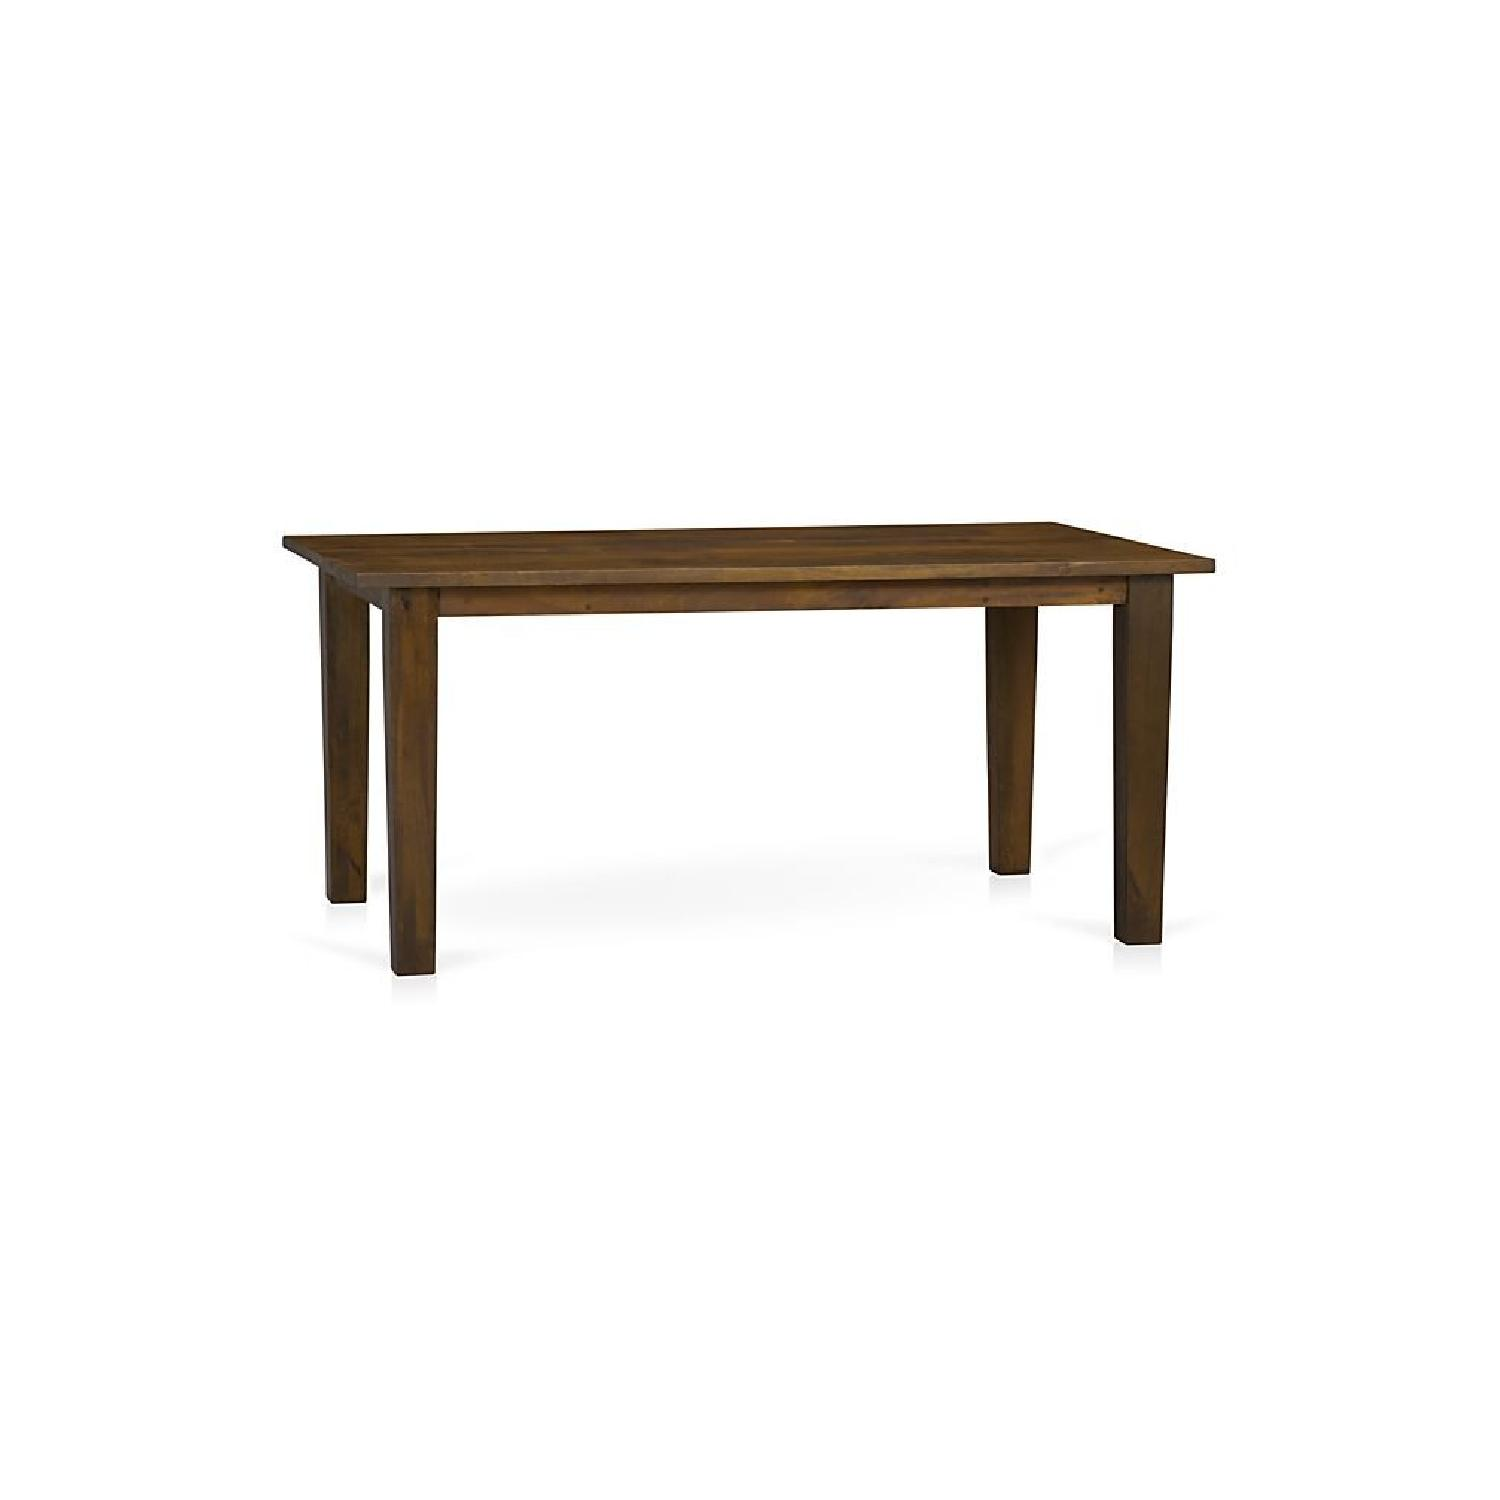 Crate & Barrel Basque Honey Dining Table